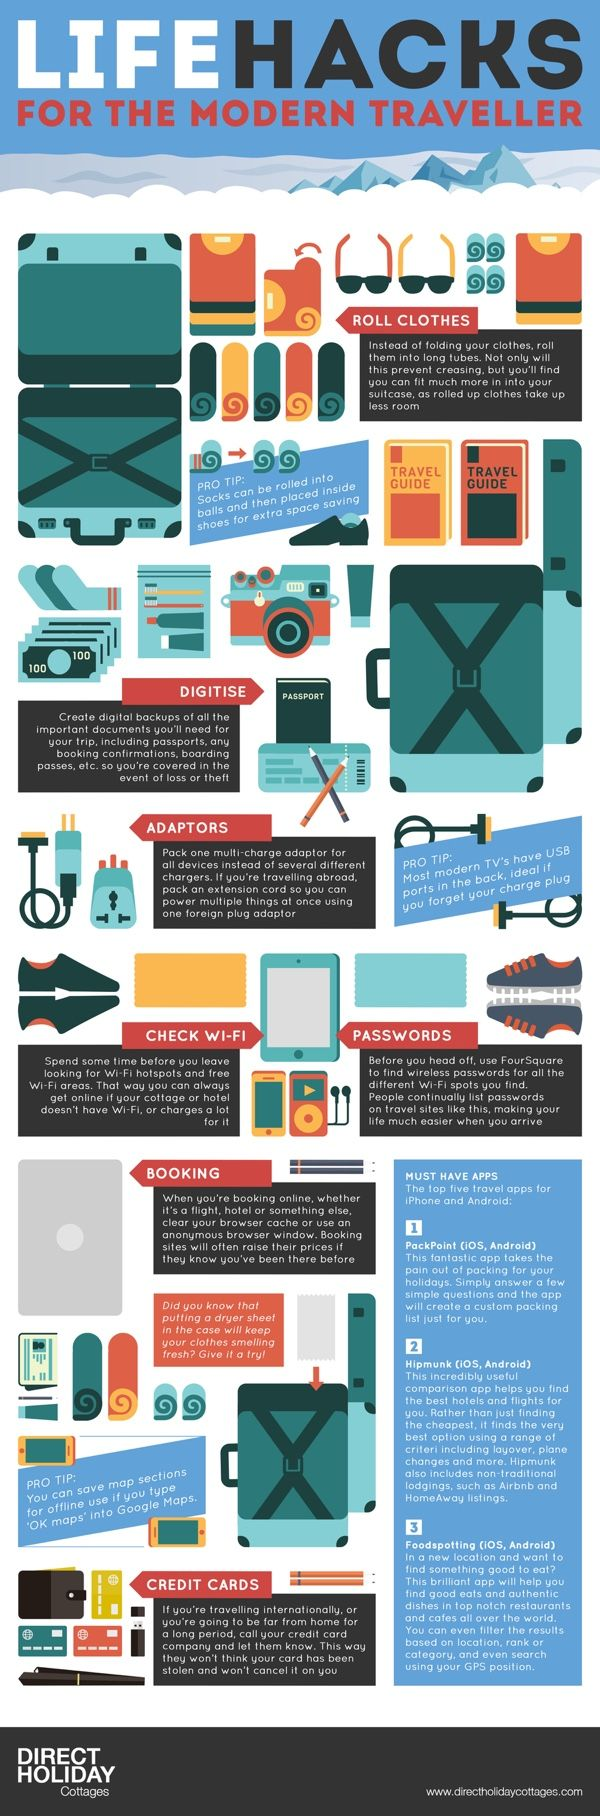 The Life Hacks for the Modern Traveller infographic from Direct Holiday Cottages provides you w...